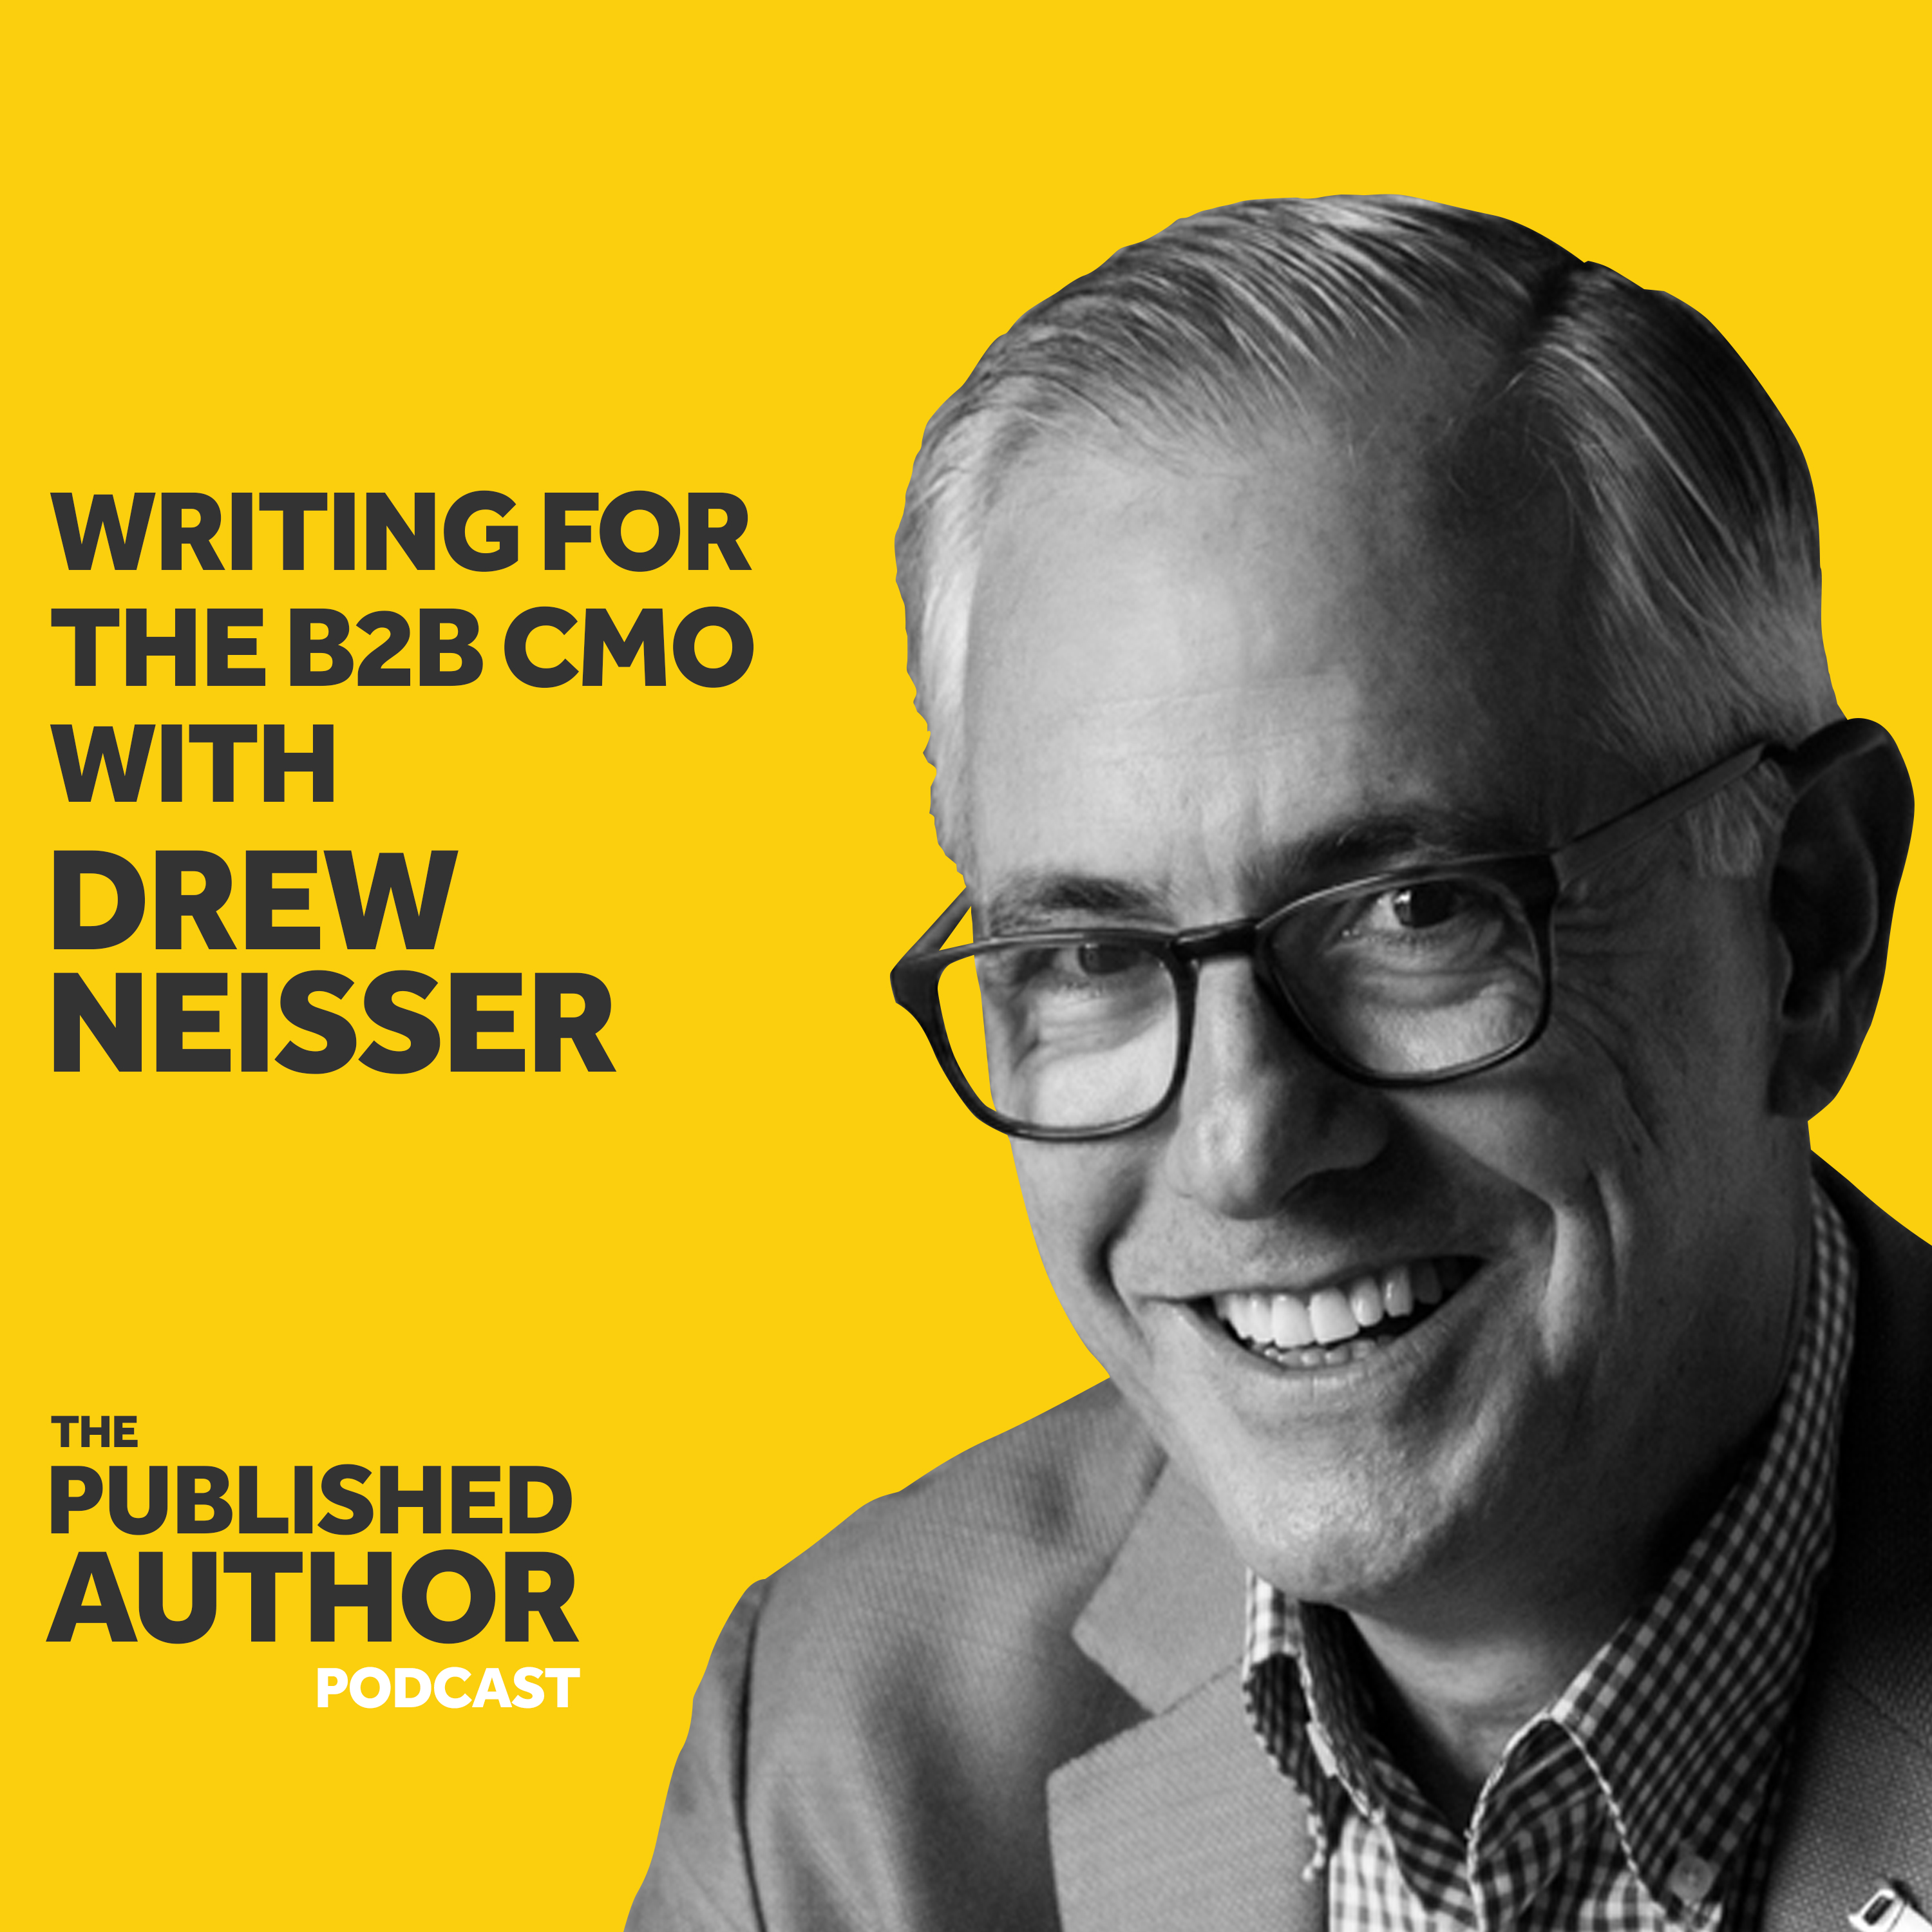 Writing For The B2B CMO With Drew Neisser